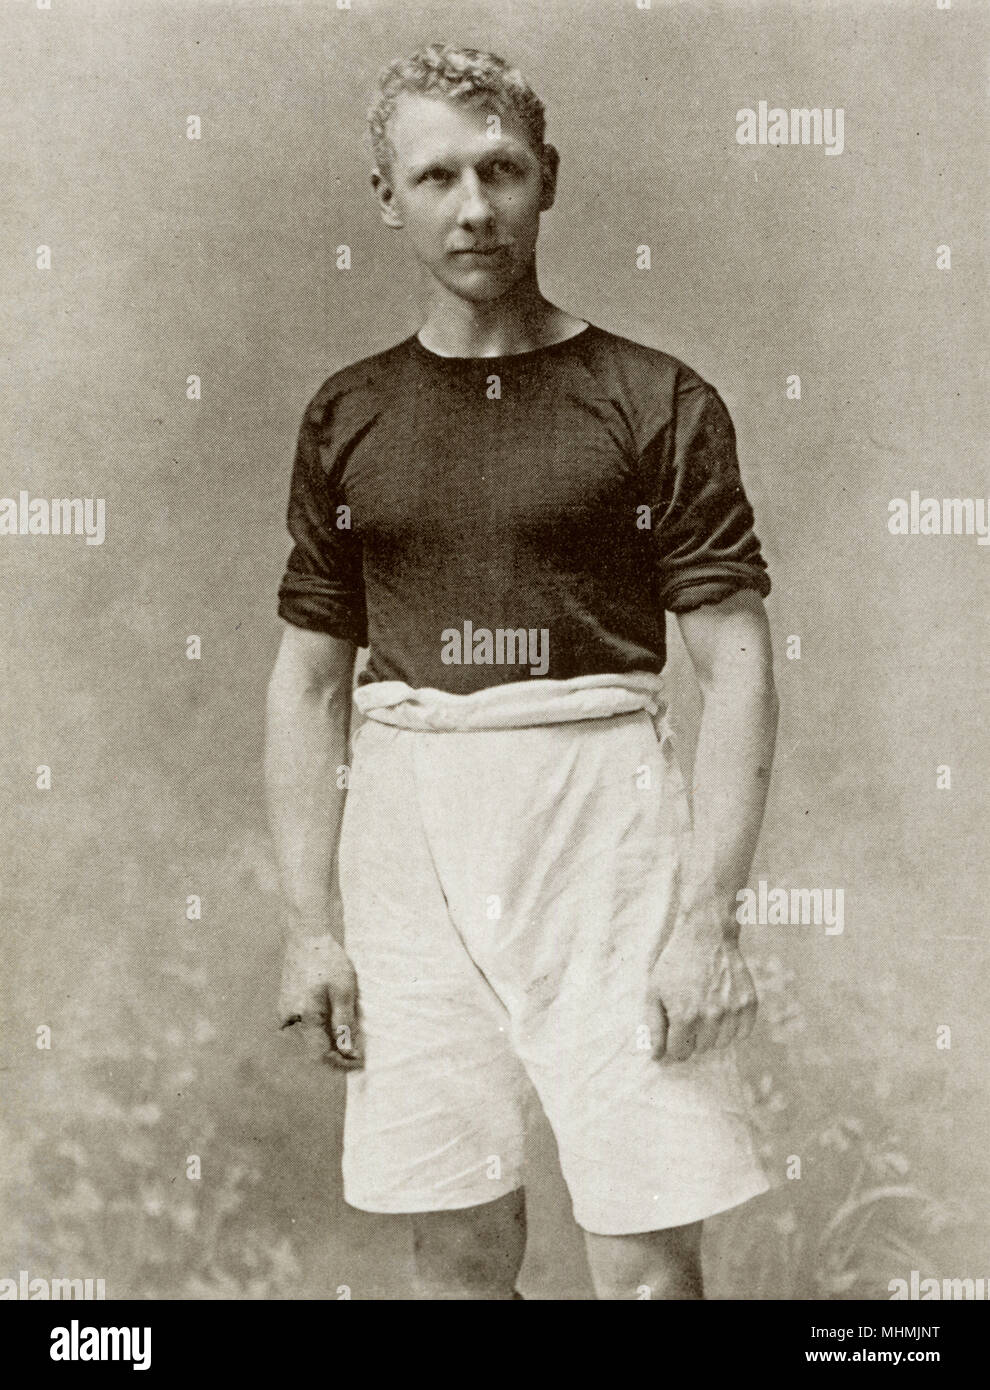 J. Jackson, who played for West Ham United.       Date: circa 1905 - Stock Image